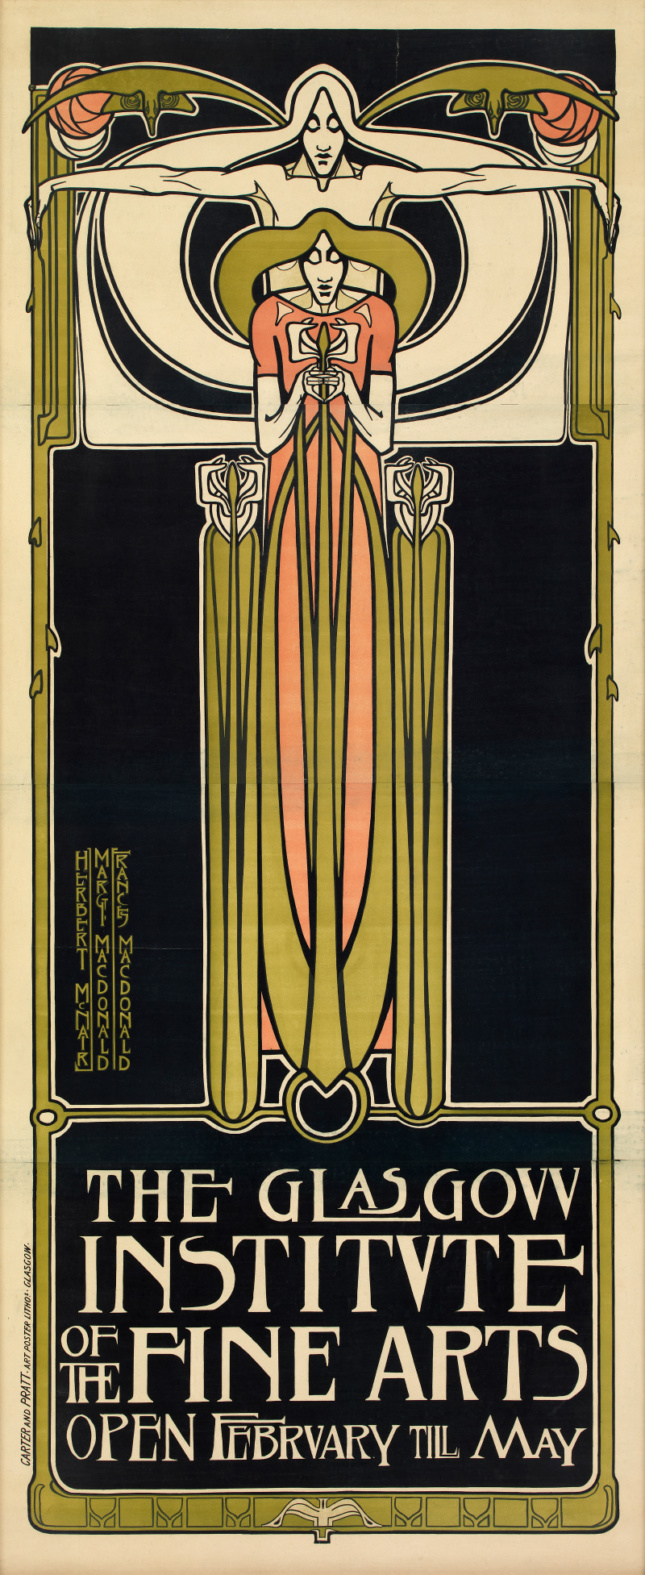 A long poster of two people standing over each other